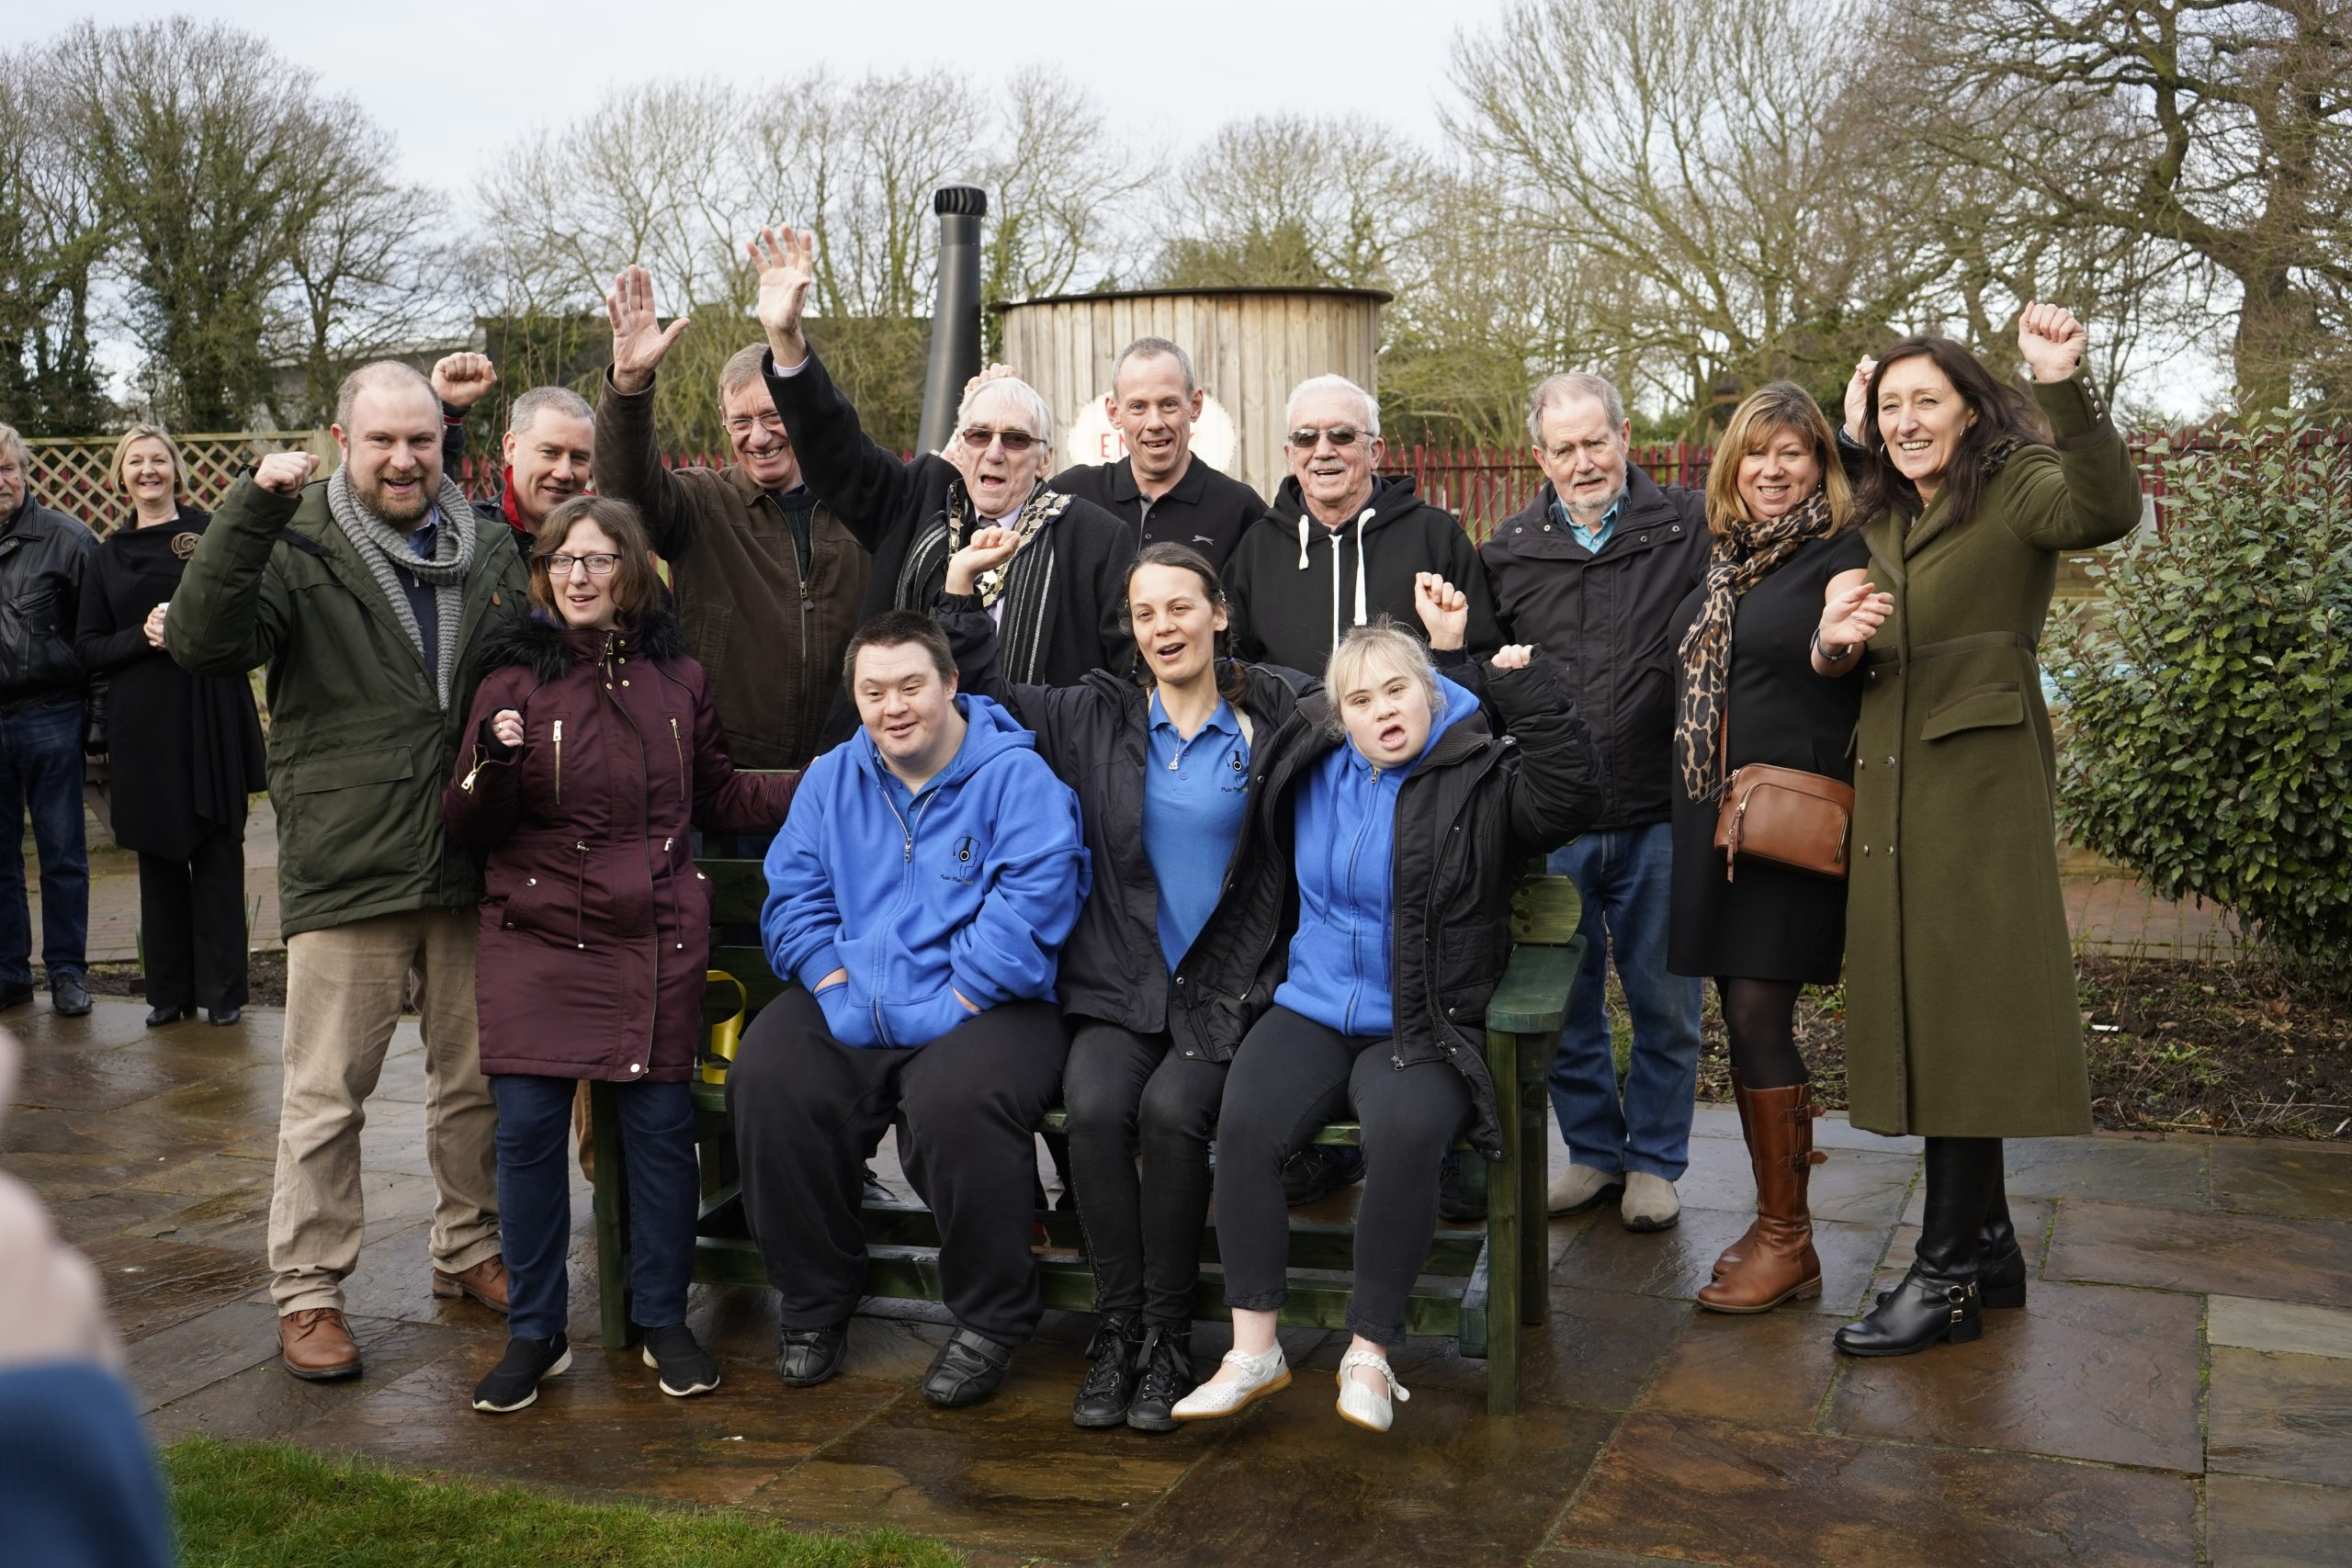 Matt King with staff, volunteers and guests at Growing Together Thundersley